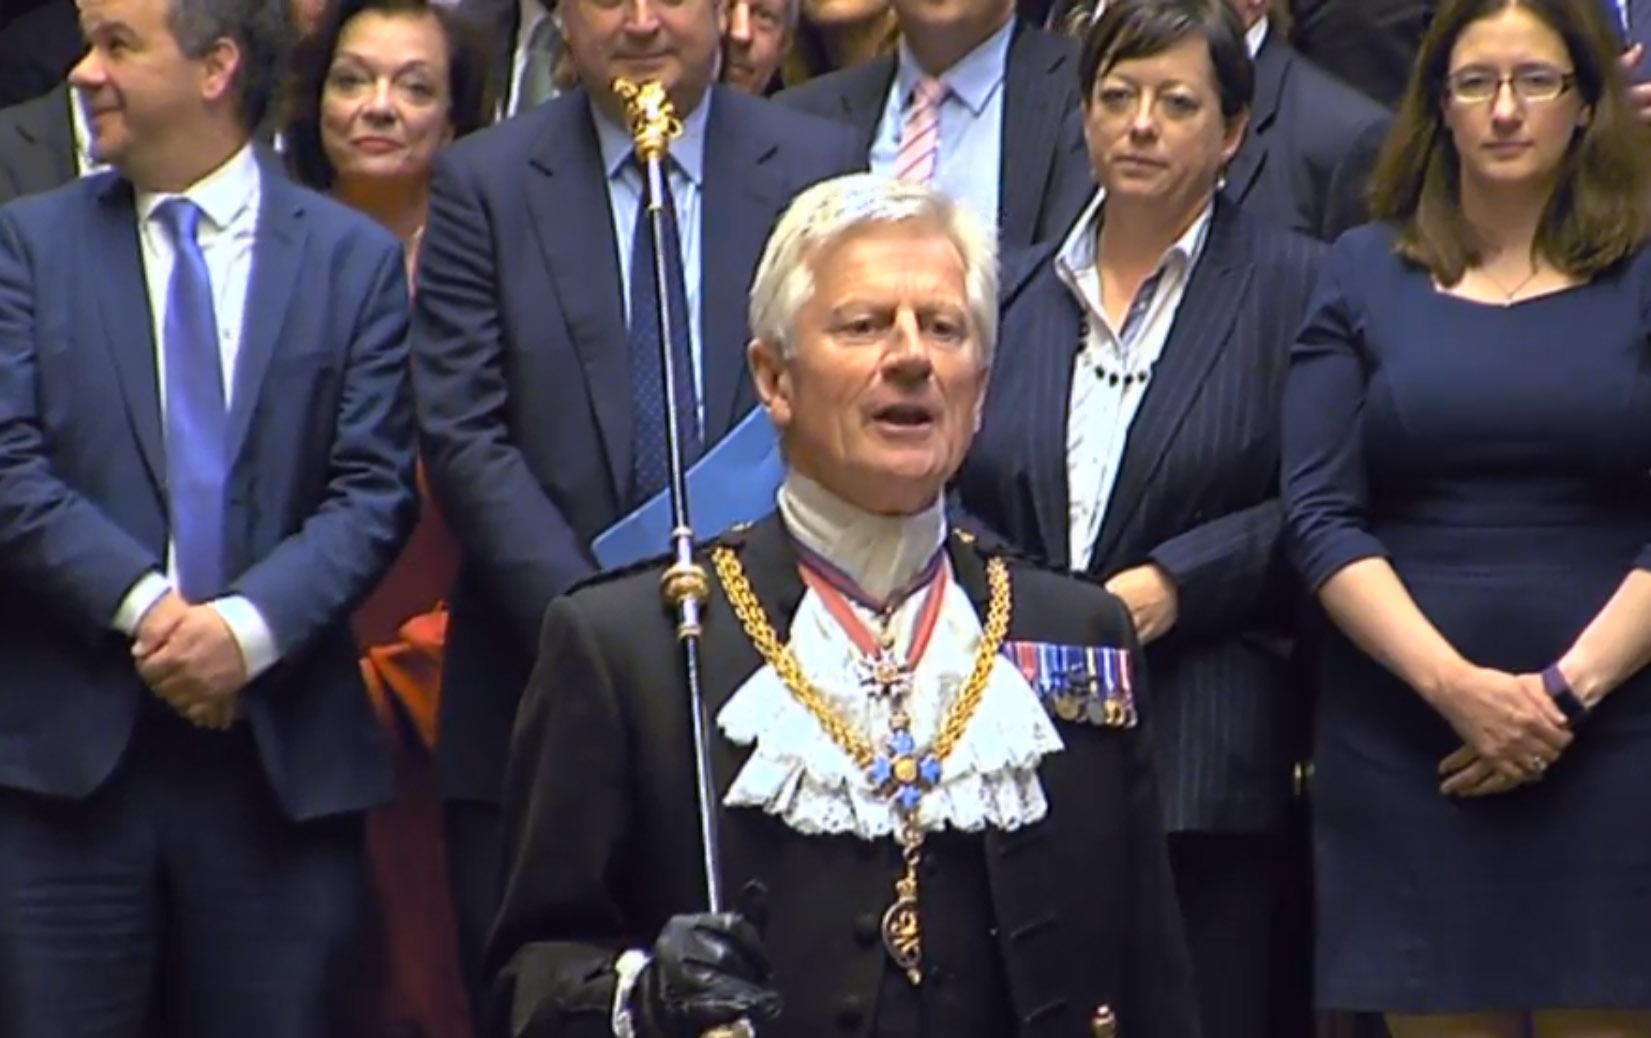 The Gentleman Usher of the Black Rod David Leakey addresses the House of Commons, London, during its first sitting since the election.